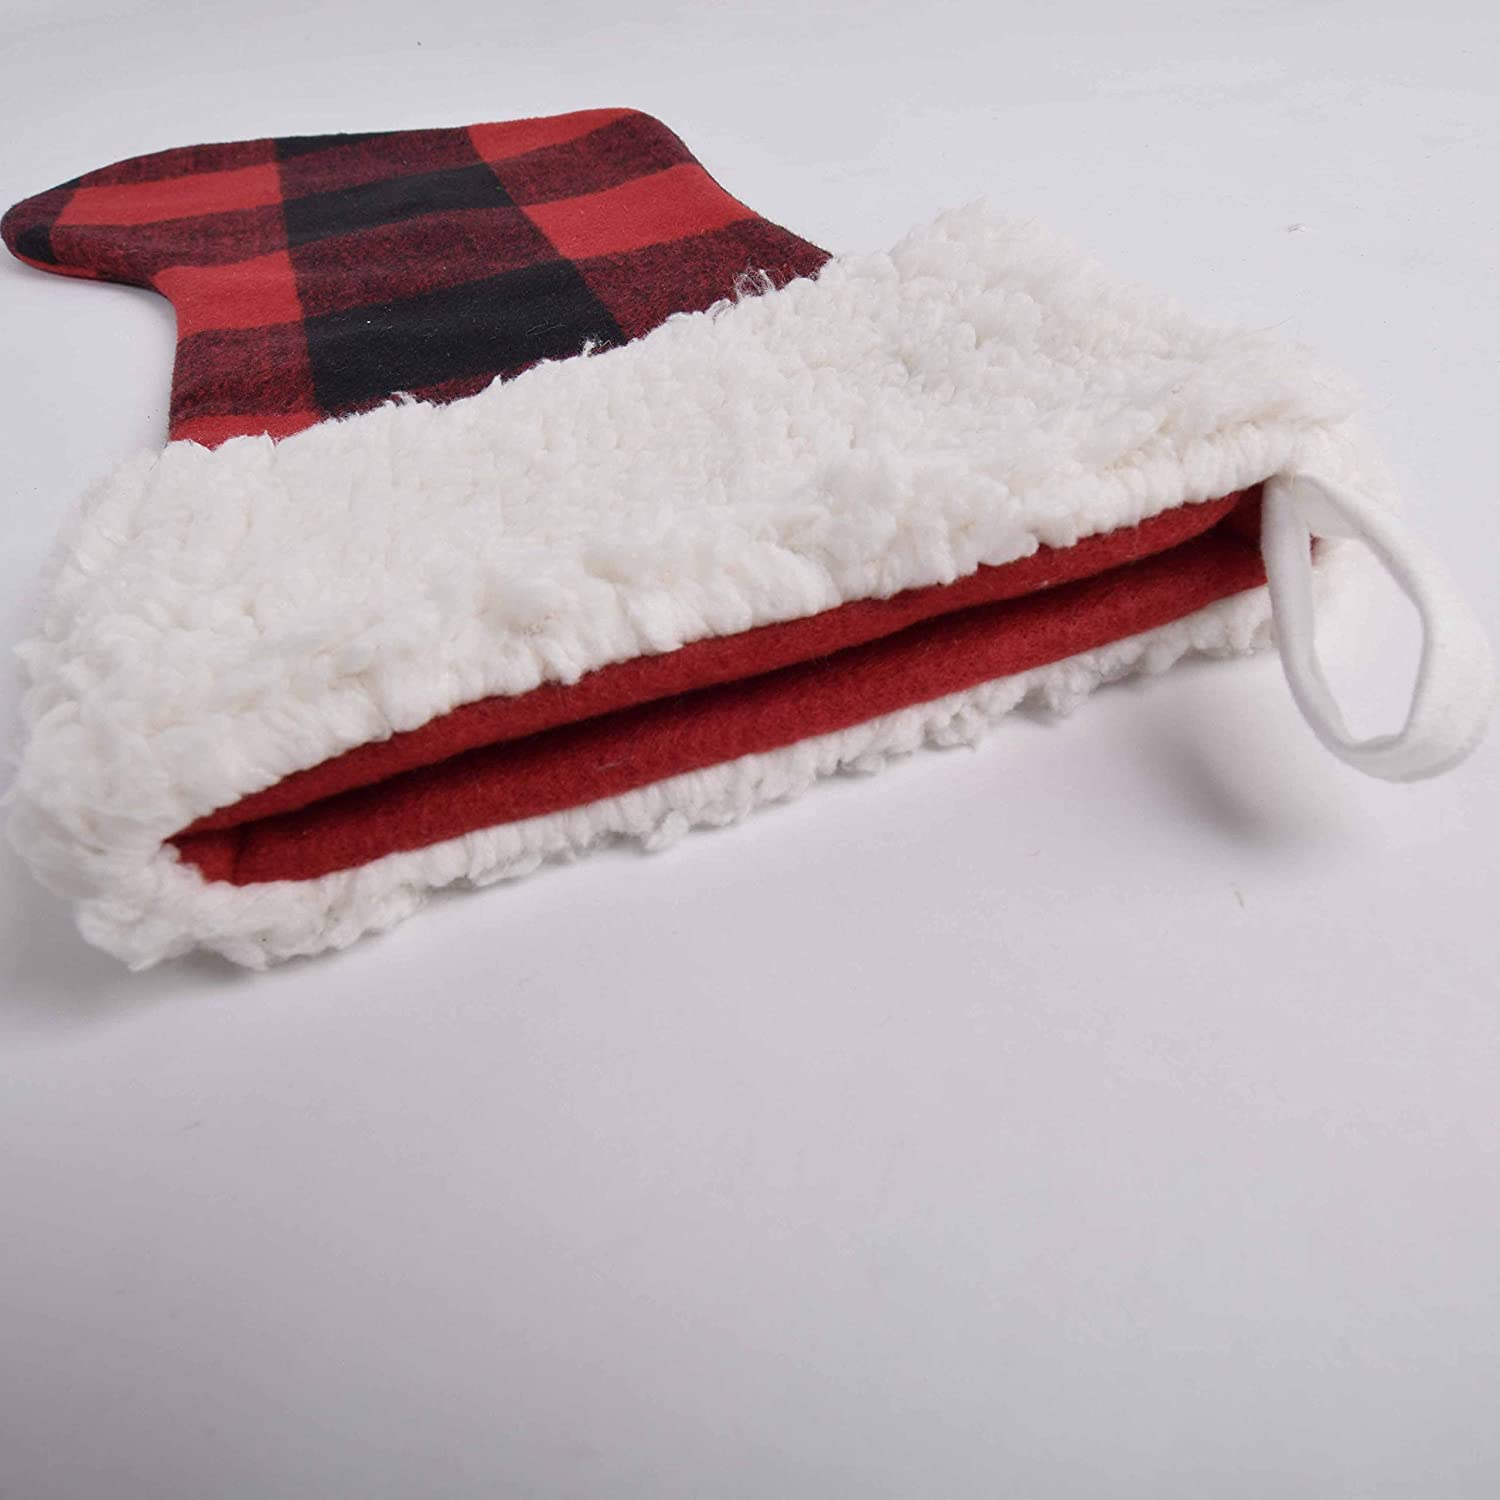 Gireshome red Buffalo Check Plaid with Sherpa Cuff Decoration Christmas Stocking Xmas Tree Decor Festival Party Ornament 10x18